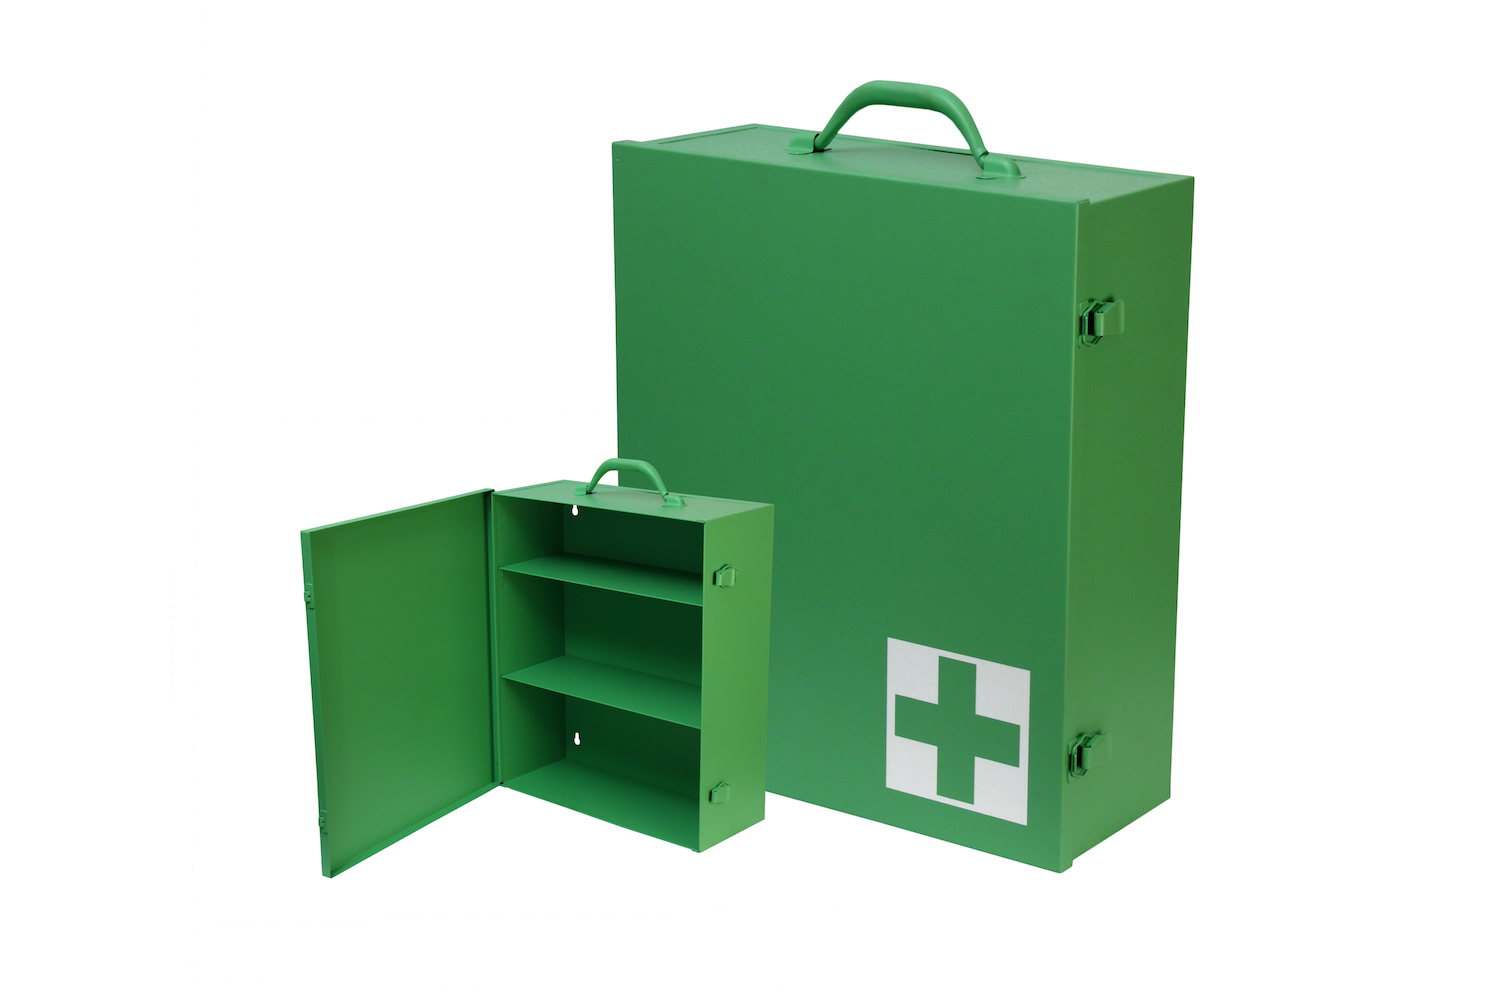 """#151 First Aid Cabinet (3 Shelf) / CUSTOM COLOR   Inside dimensions 13 1/2 x 16 x 5 1/2"""" Shelf spacing top to bottom 4""""—6""""—6 1/8"""" Individual weight 10 1/2 lbs Individual carton Max QTY per 40 x 48"""" pallet—66"""